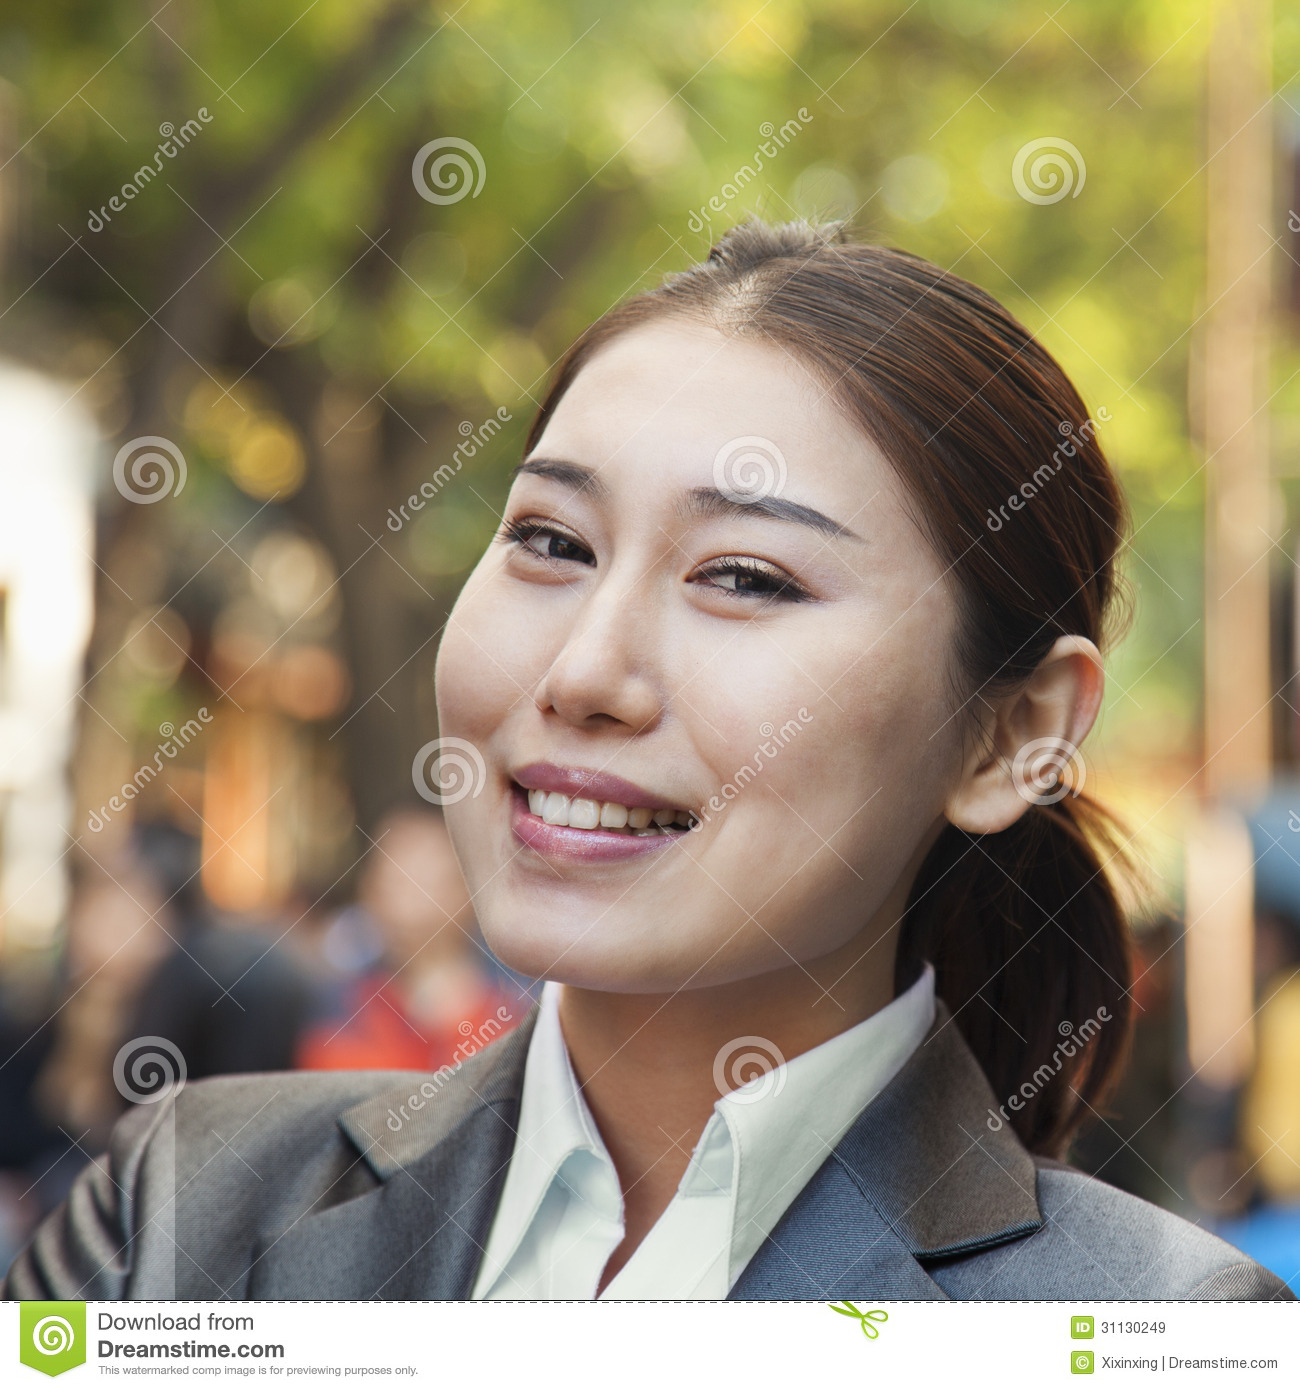 Portrait of young smiling businesswoman in Houhai, Beijing, China